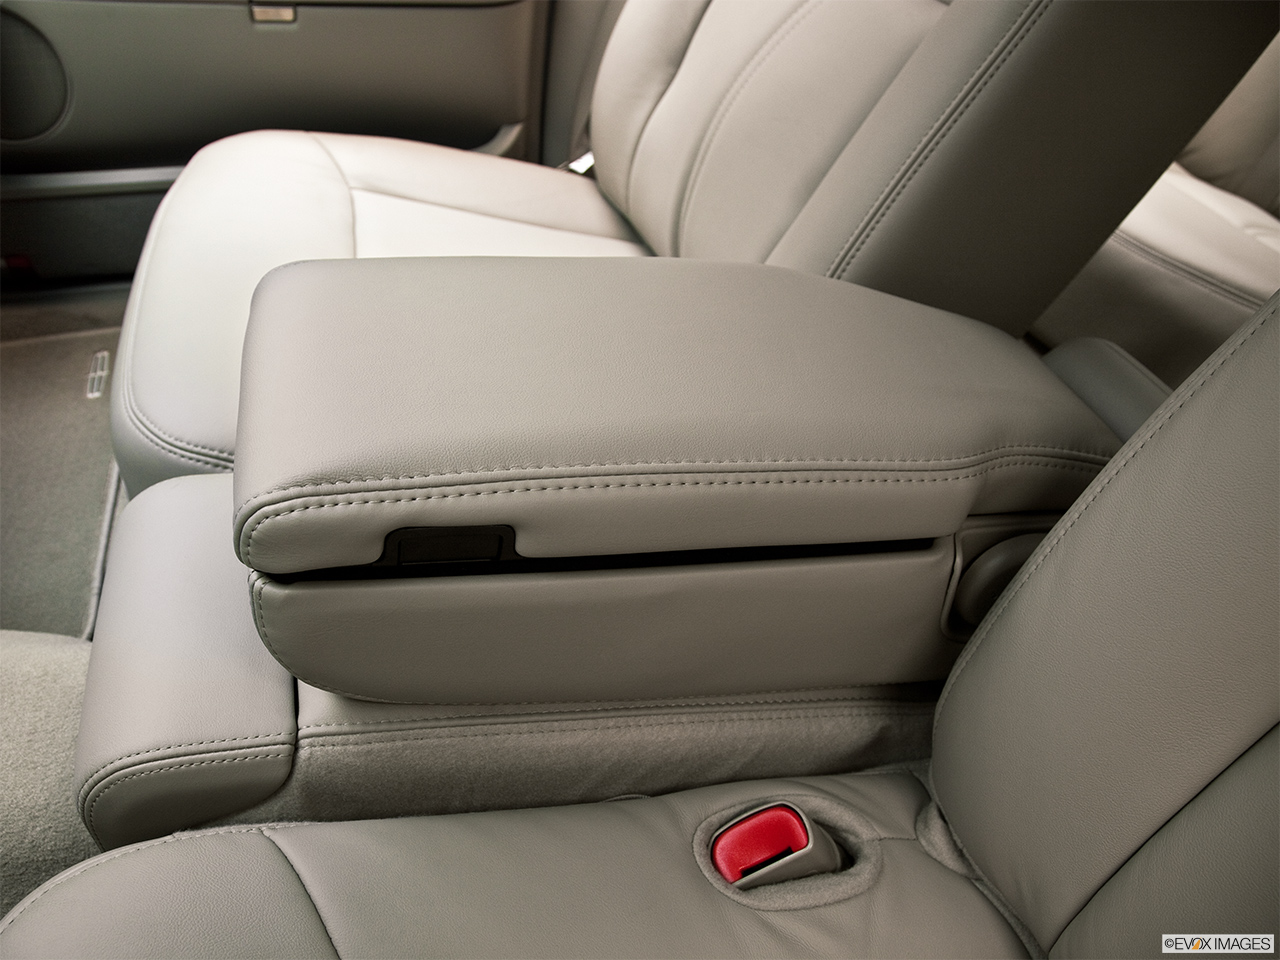 2011 Lincoln Town Car Signature Limited Front center console with closed lid, from driver's side looking down